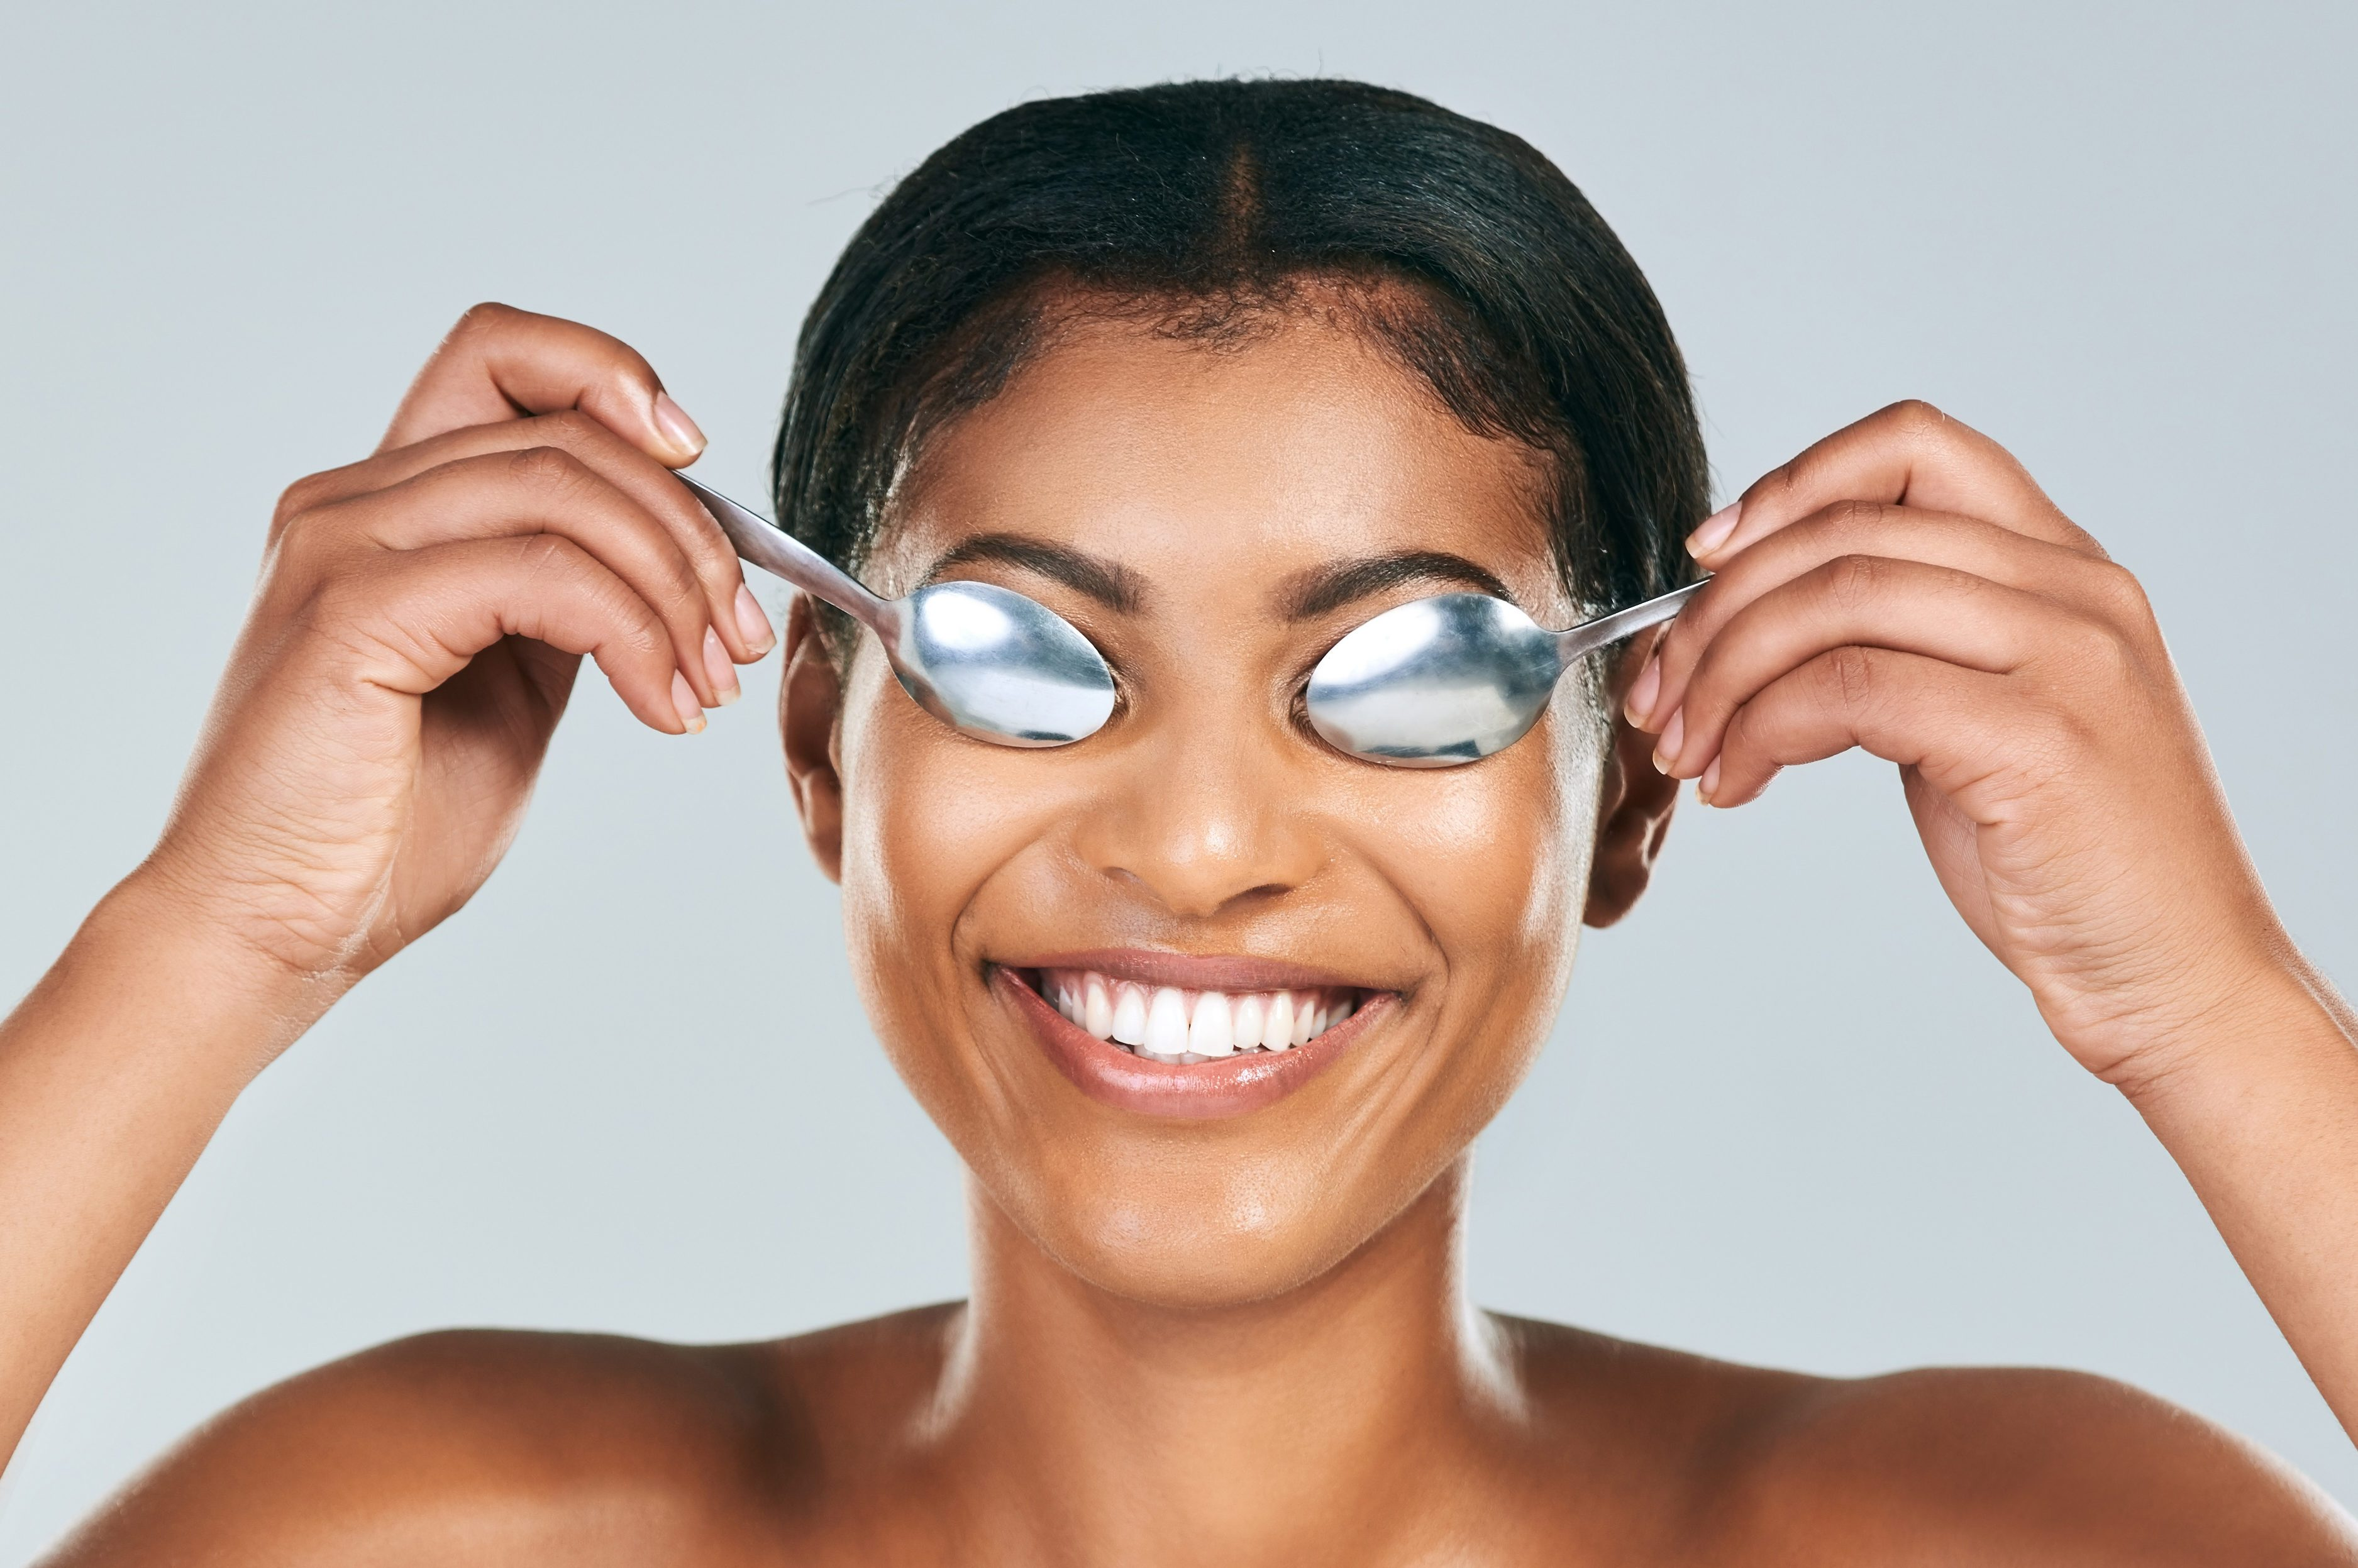 Cure puffy eyes with cold spoons